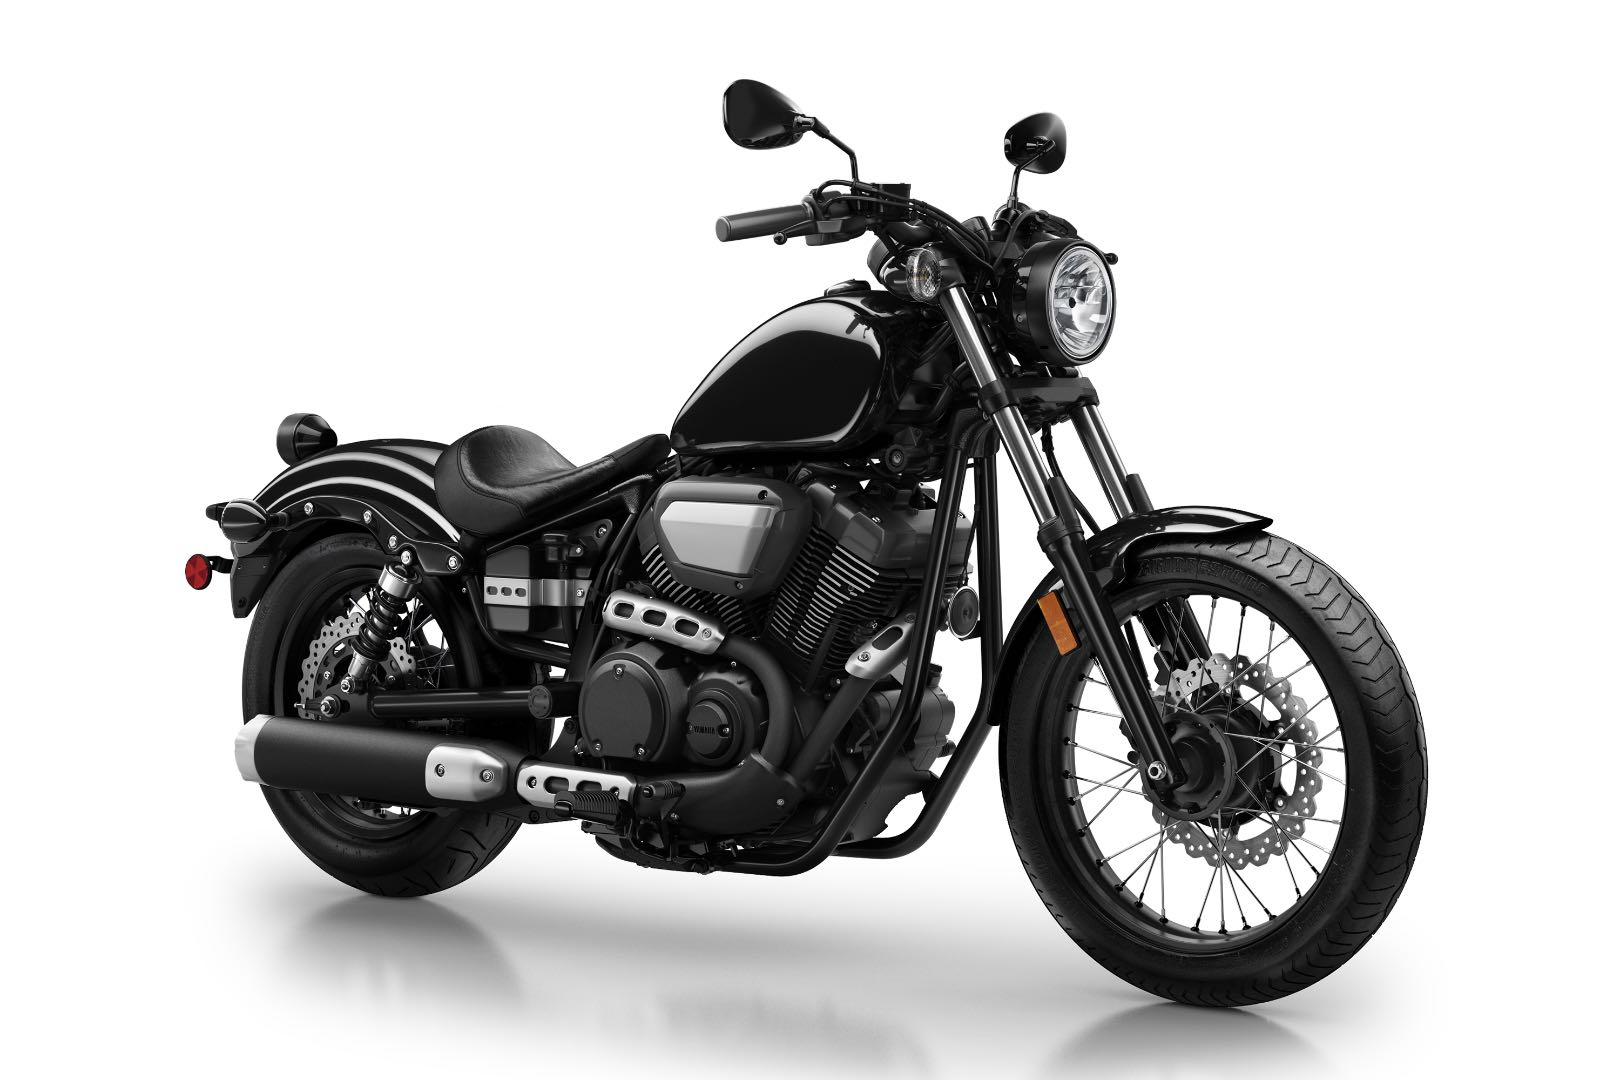 2020 Yamaha Bolt and Bolt R-Spec Buyer's Guide: Specs & Prices